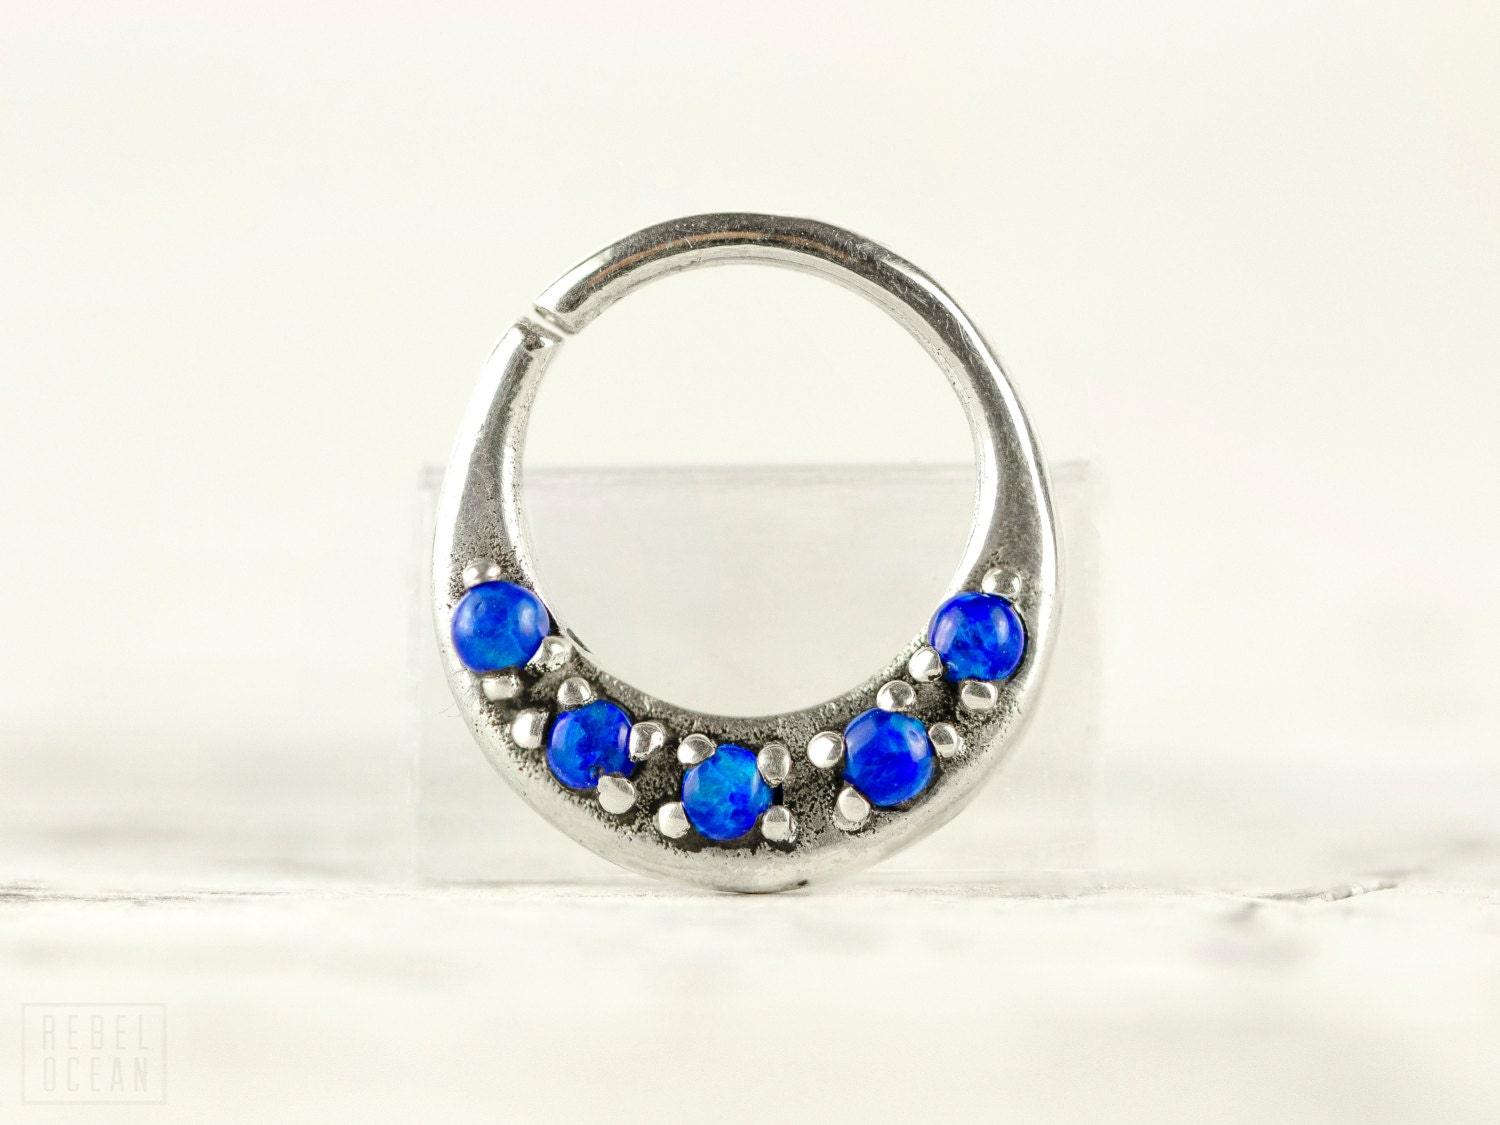 Septum Ring Nose Ring Septum Jewelry Body Blue Opal Stone